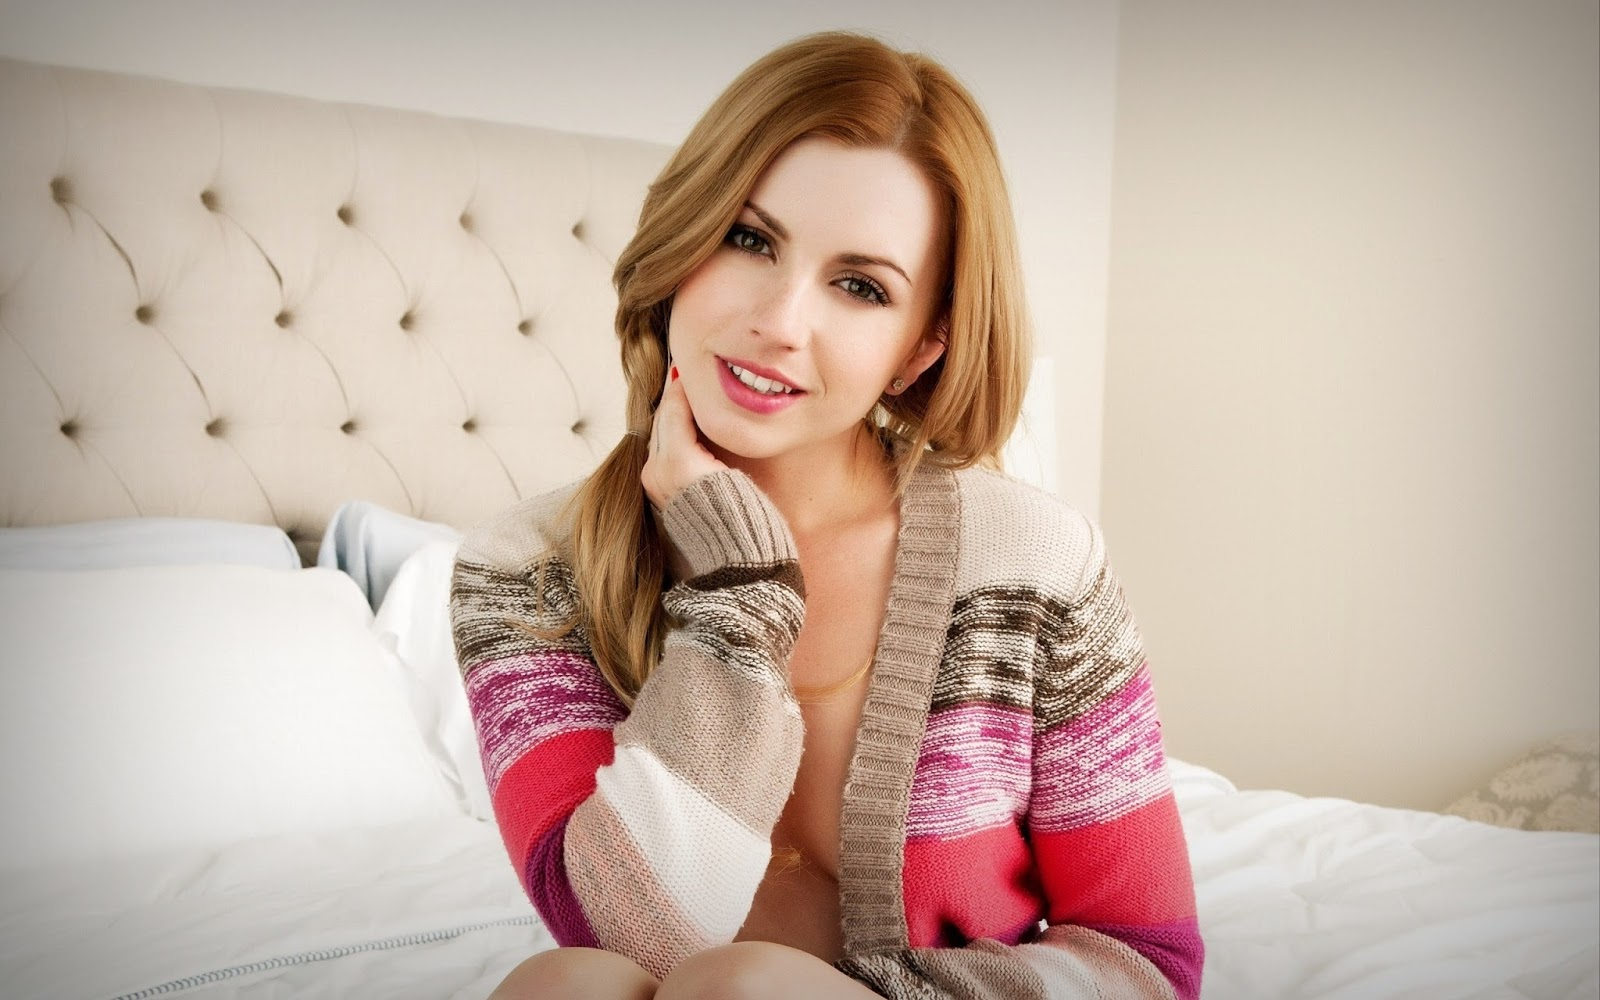 lexi belle hot images